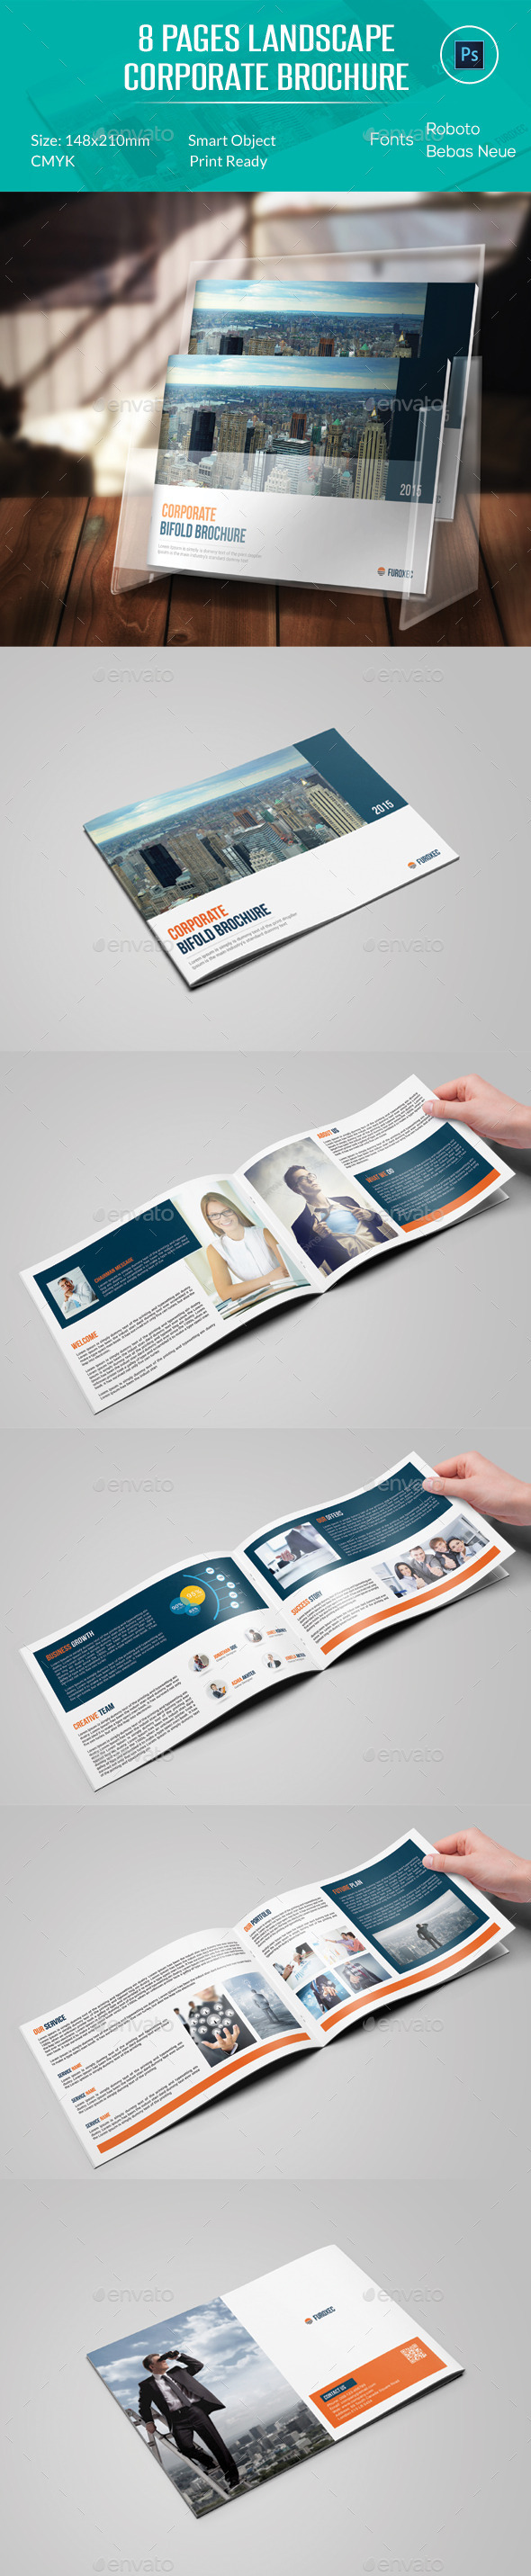 8 Pages Landscape Corporate Brochure - Corporate Brochures